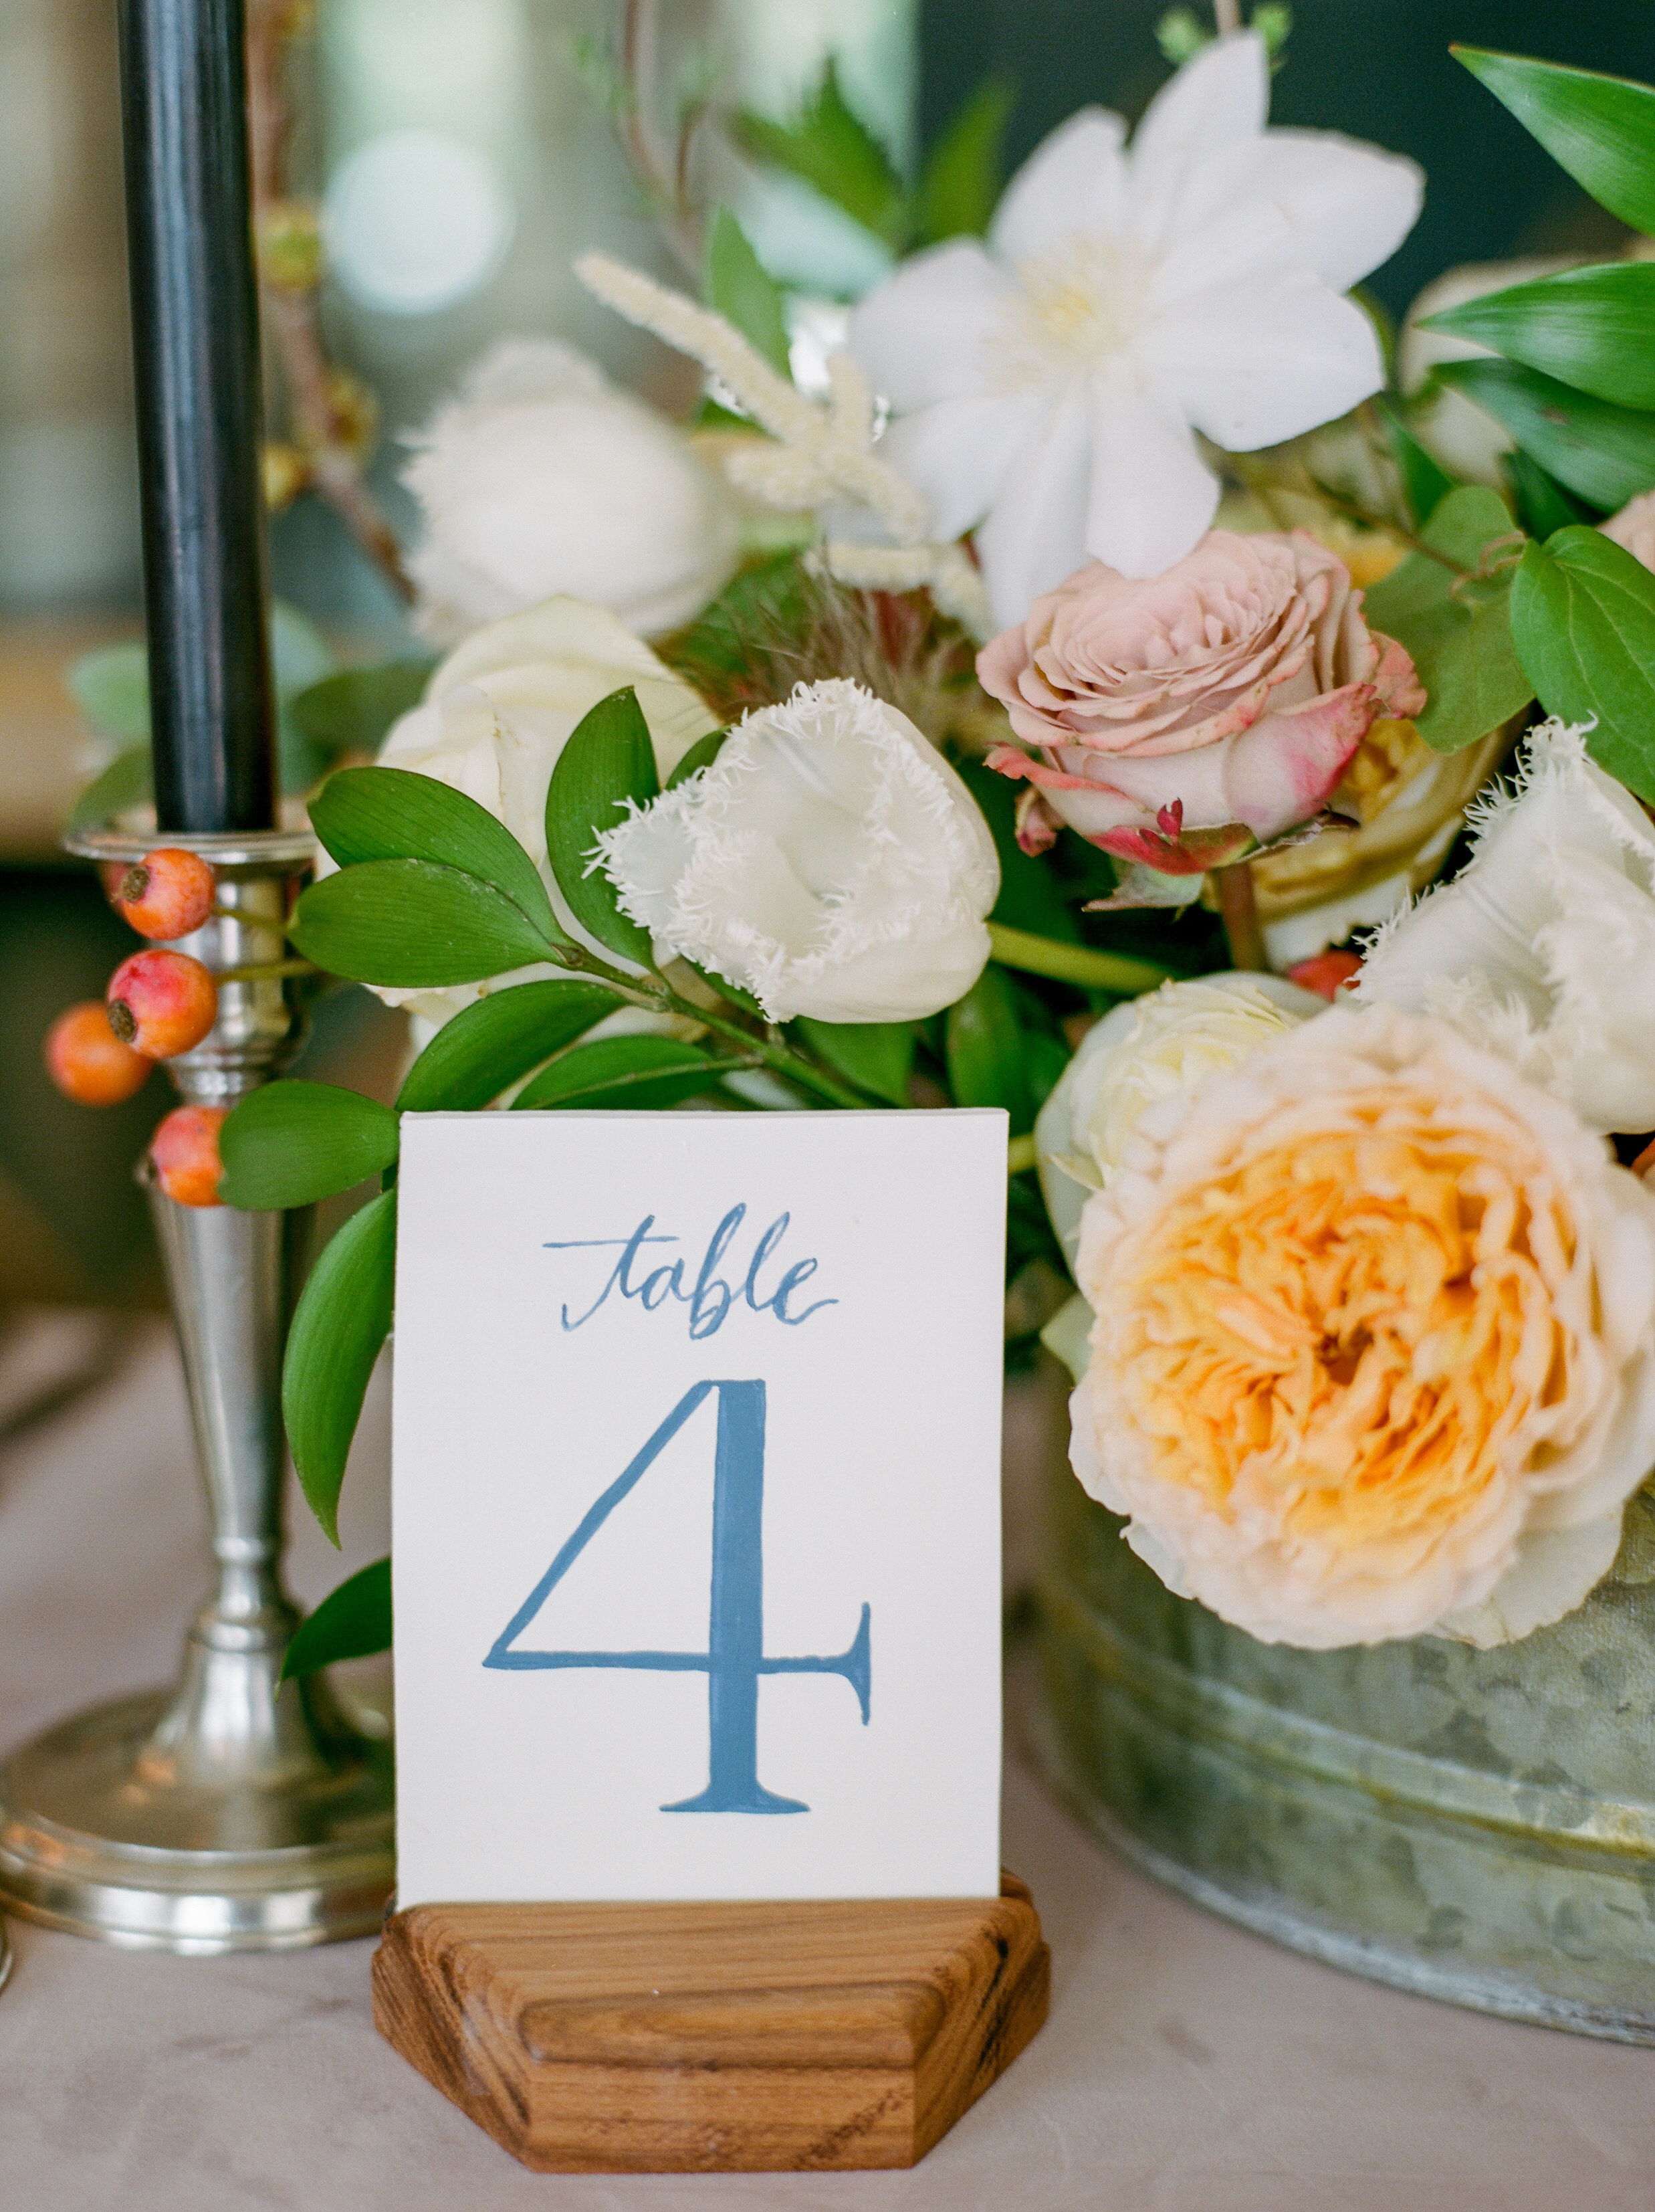 Spring Wedding at Station 51 - Photography: Josh and Dana FernandezFlorist: Lanson B. Jones Floral Co.Venue: Station 51, Houston